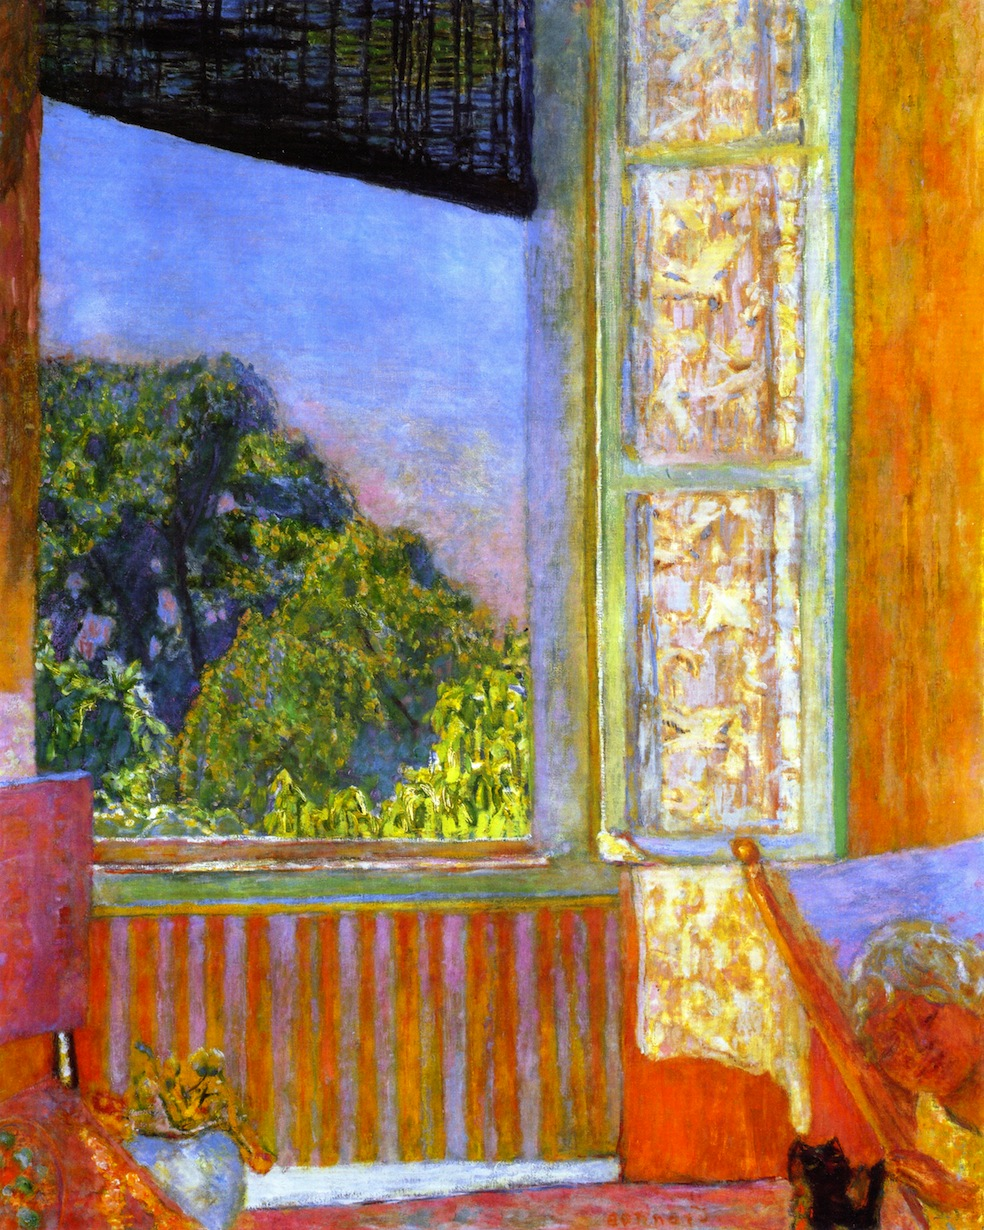 Pierre_Bonnard_The_Open_Window 1921